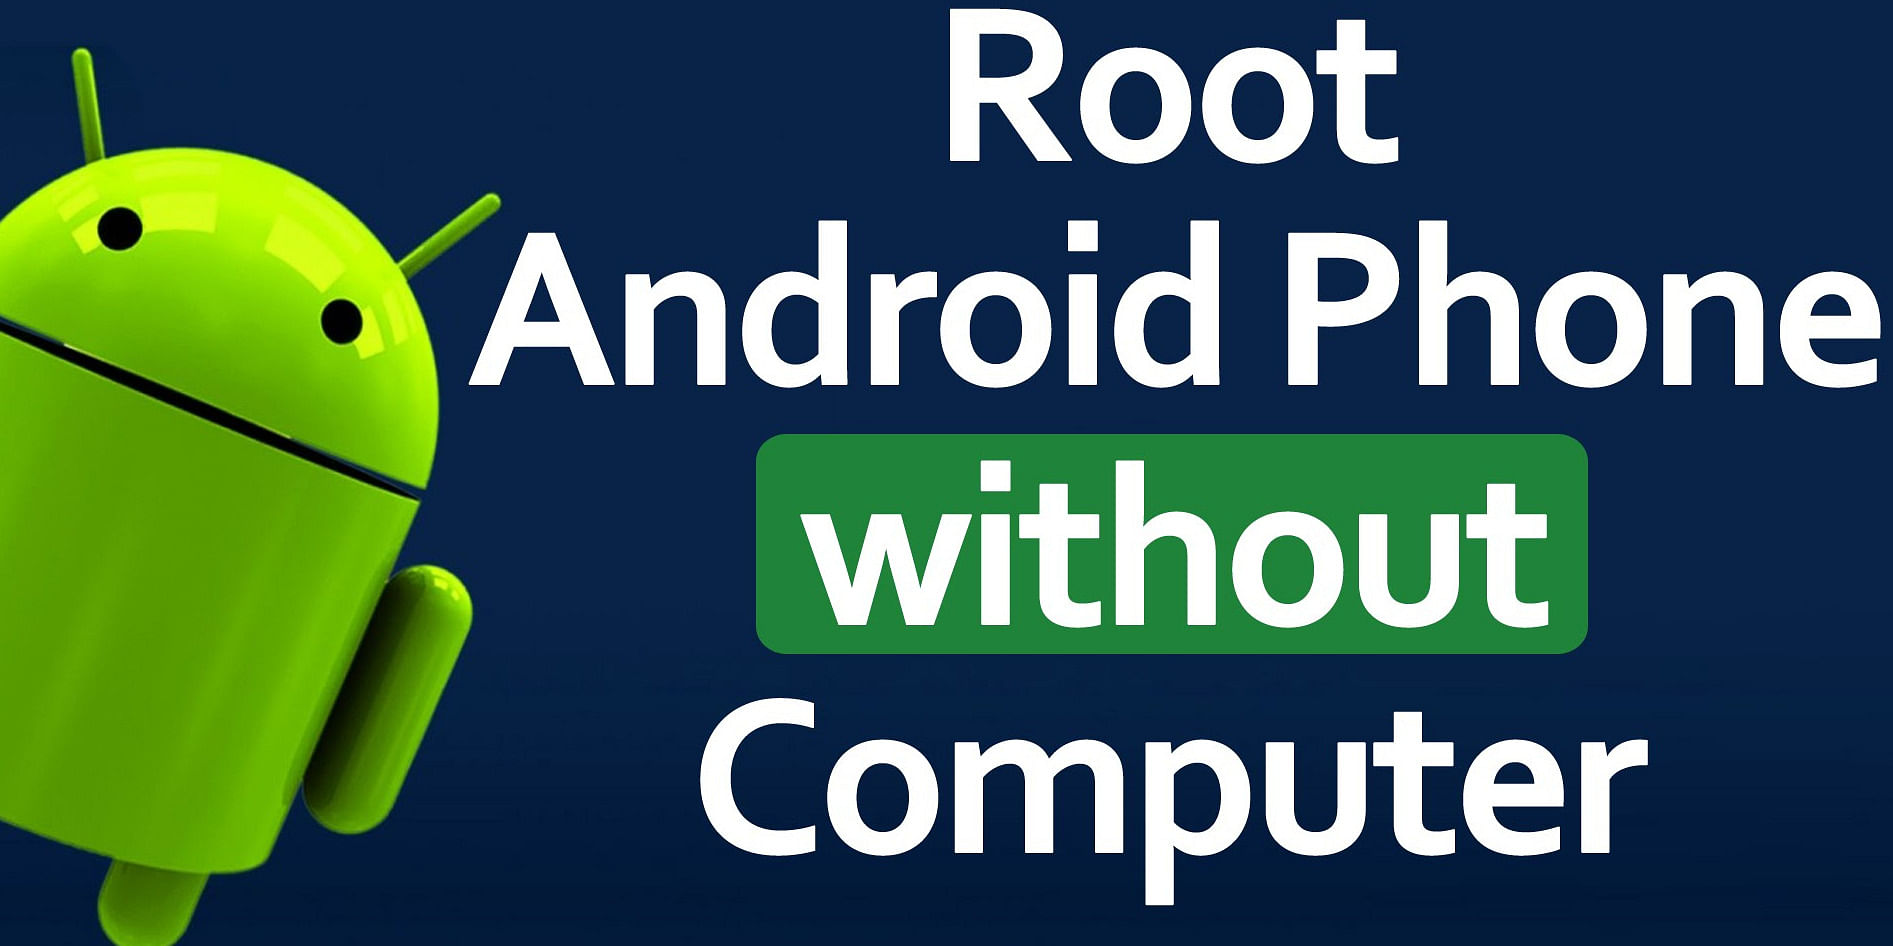 How to Install and Flash a custom rom on Android phone